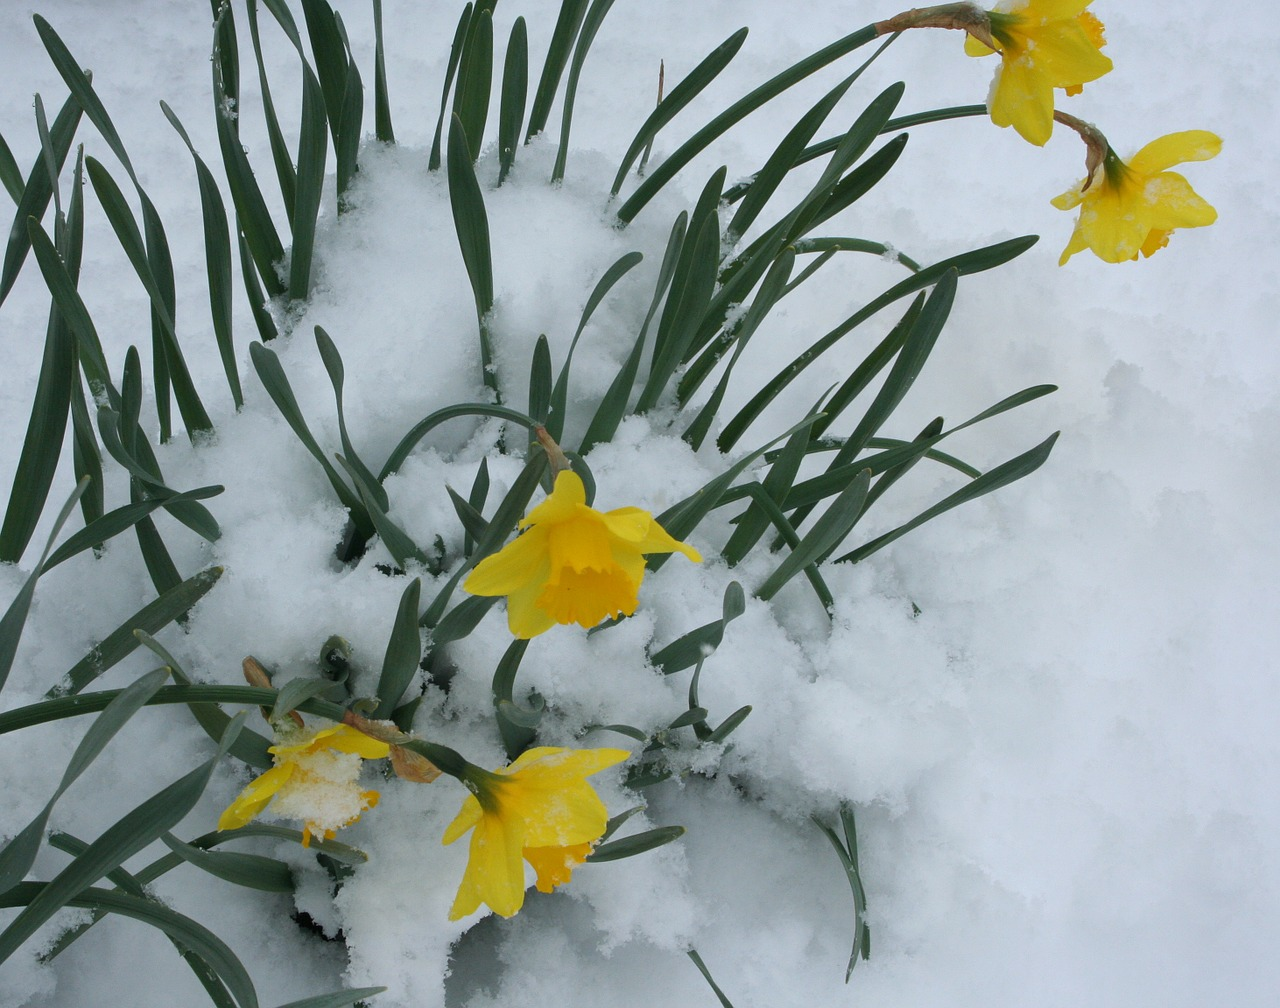 flowers daffodils snow free photo